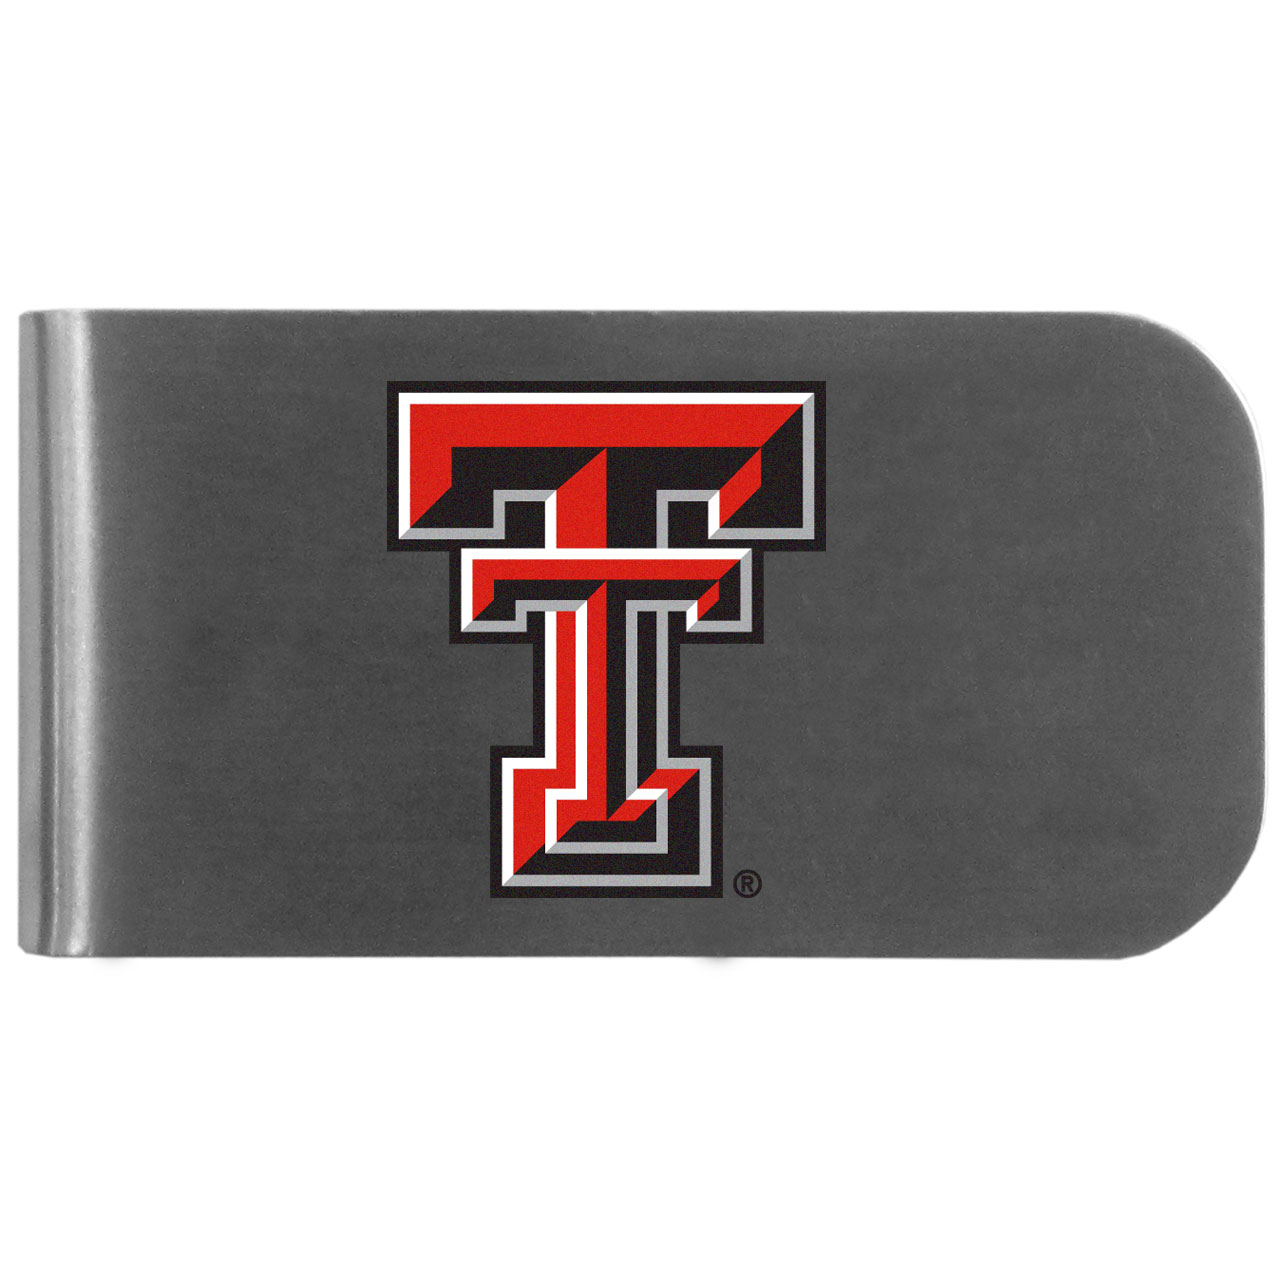 Texas Tech Raiders Logo Bottle Opener Money Clip - This unique money clip features a classic, brushed-metal finish with a handy bottle opener feature on the back. The clip has the Texas Tech Raiders logo expertly printed on the front of the clip.